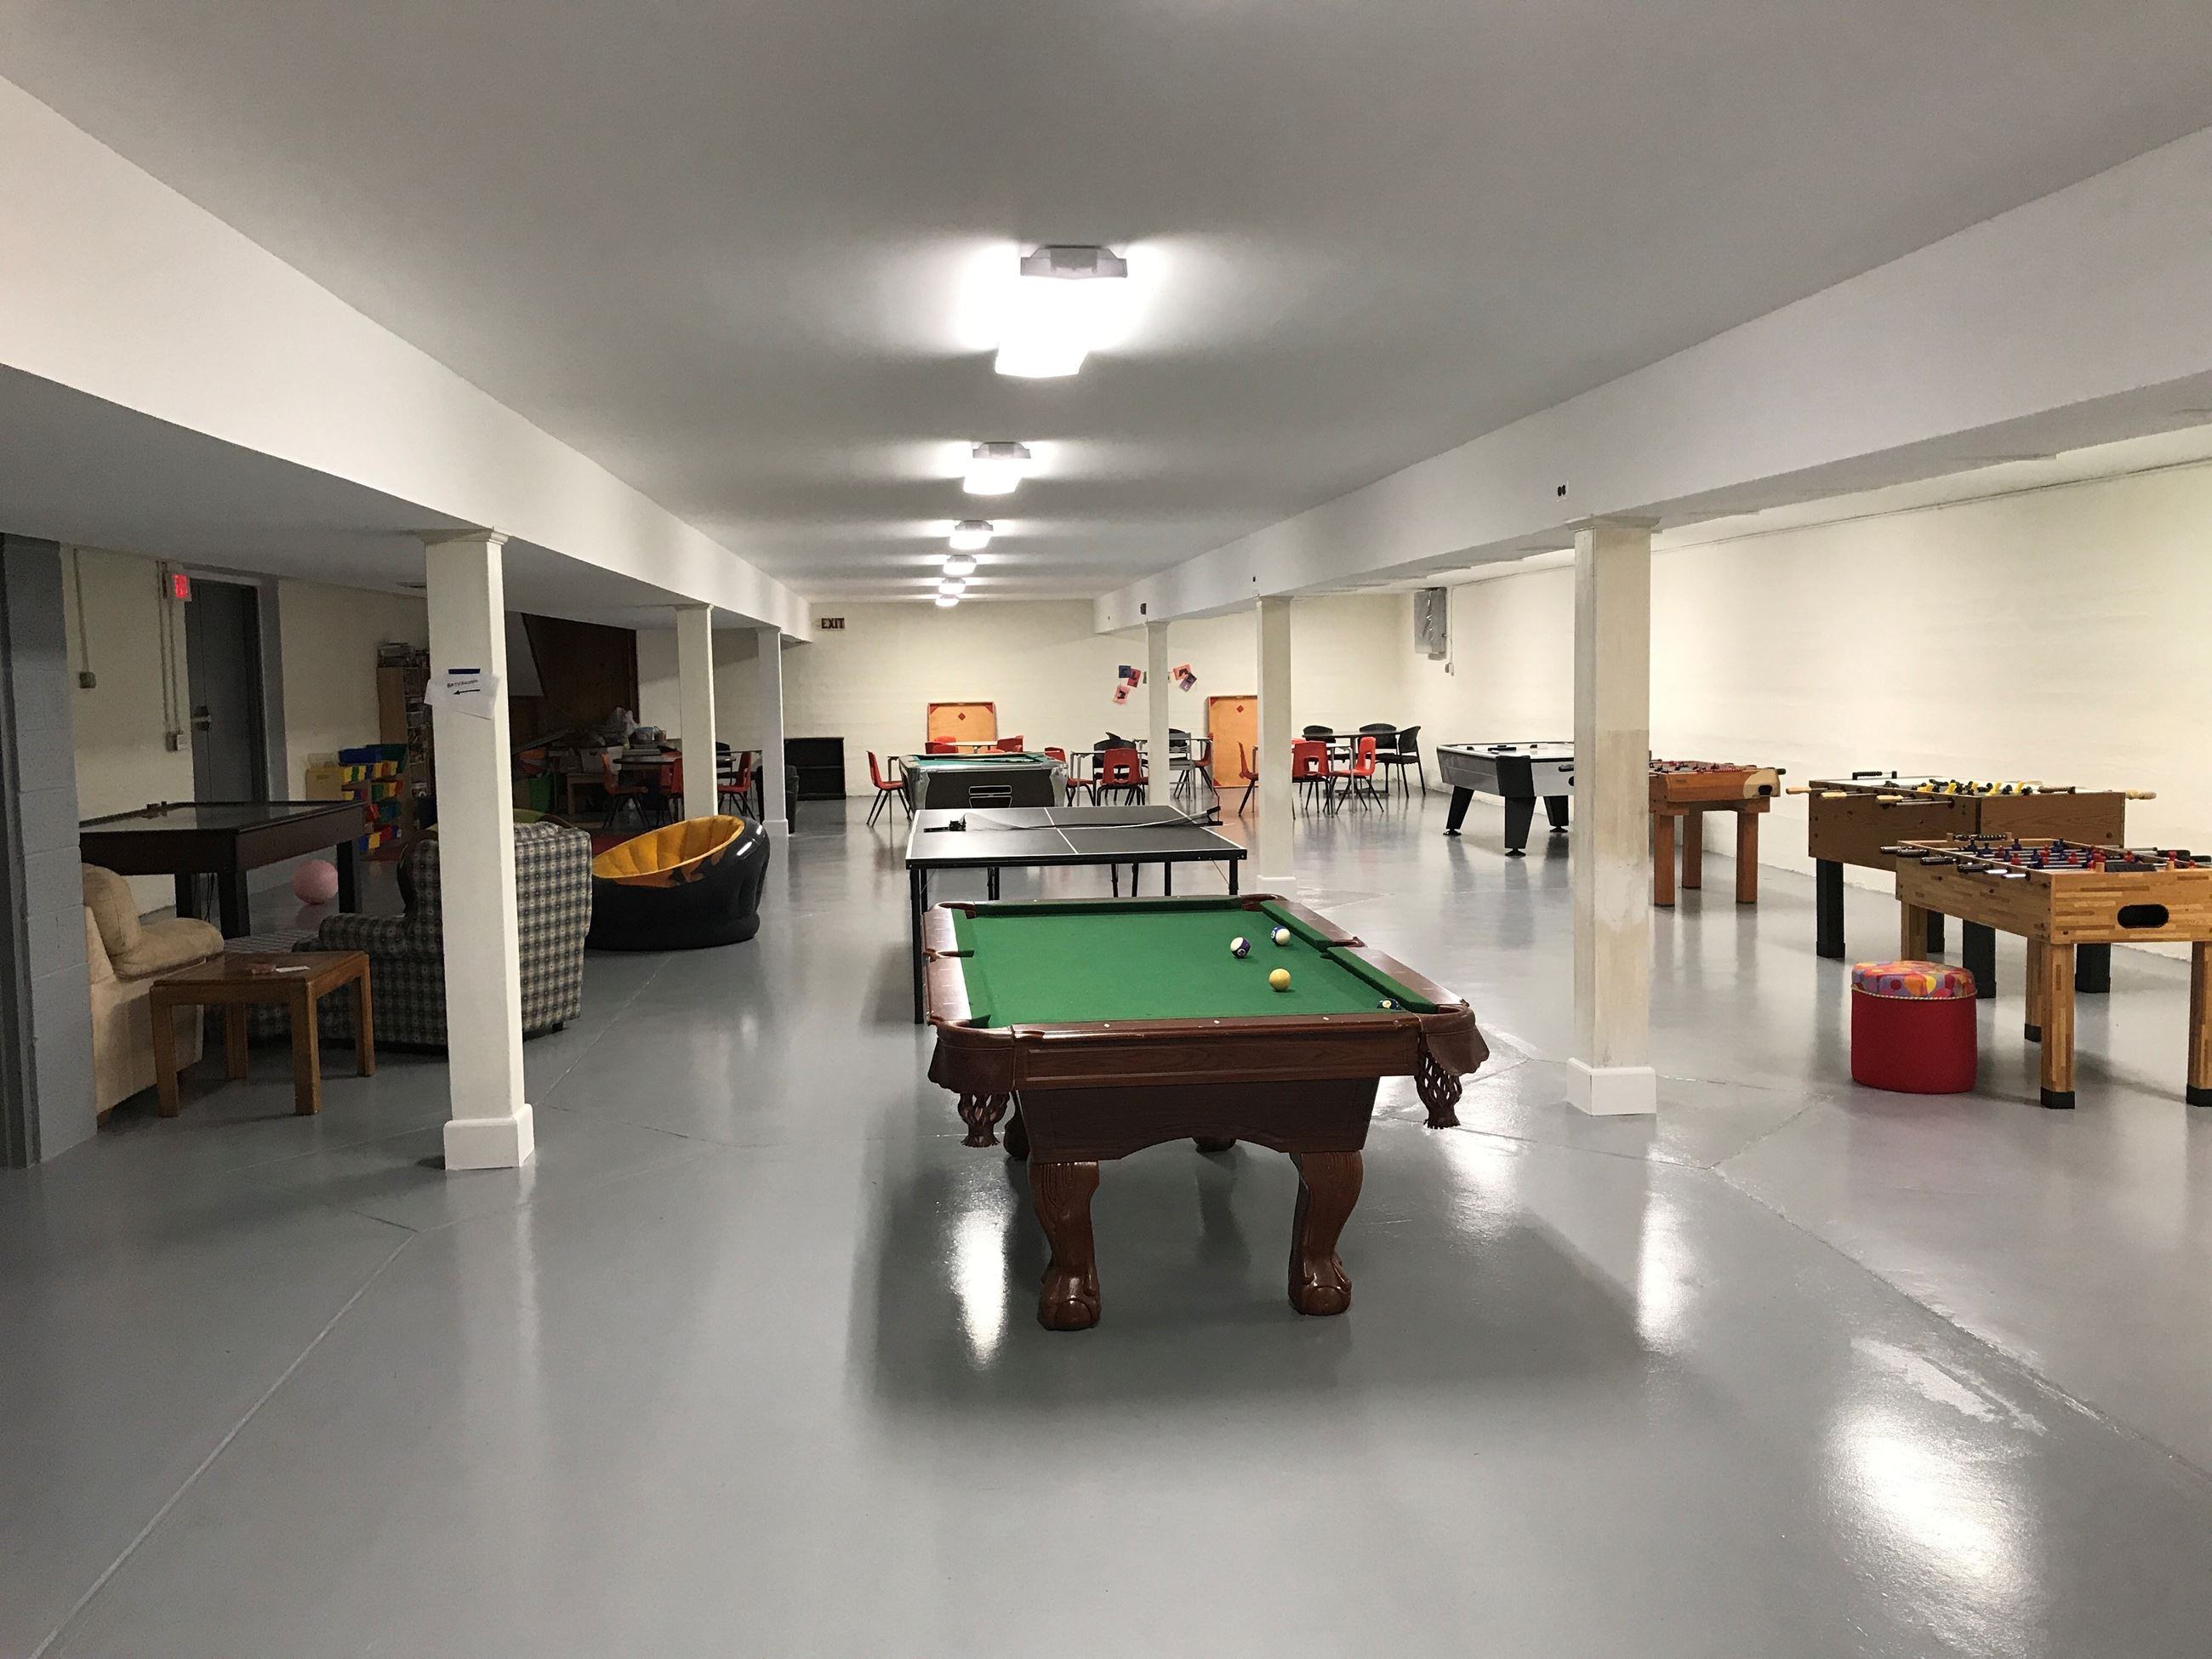 Recreation Center Basement Game Room 1